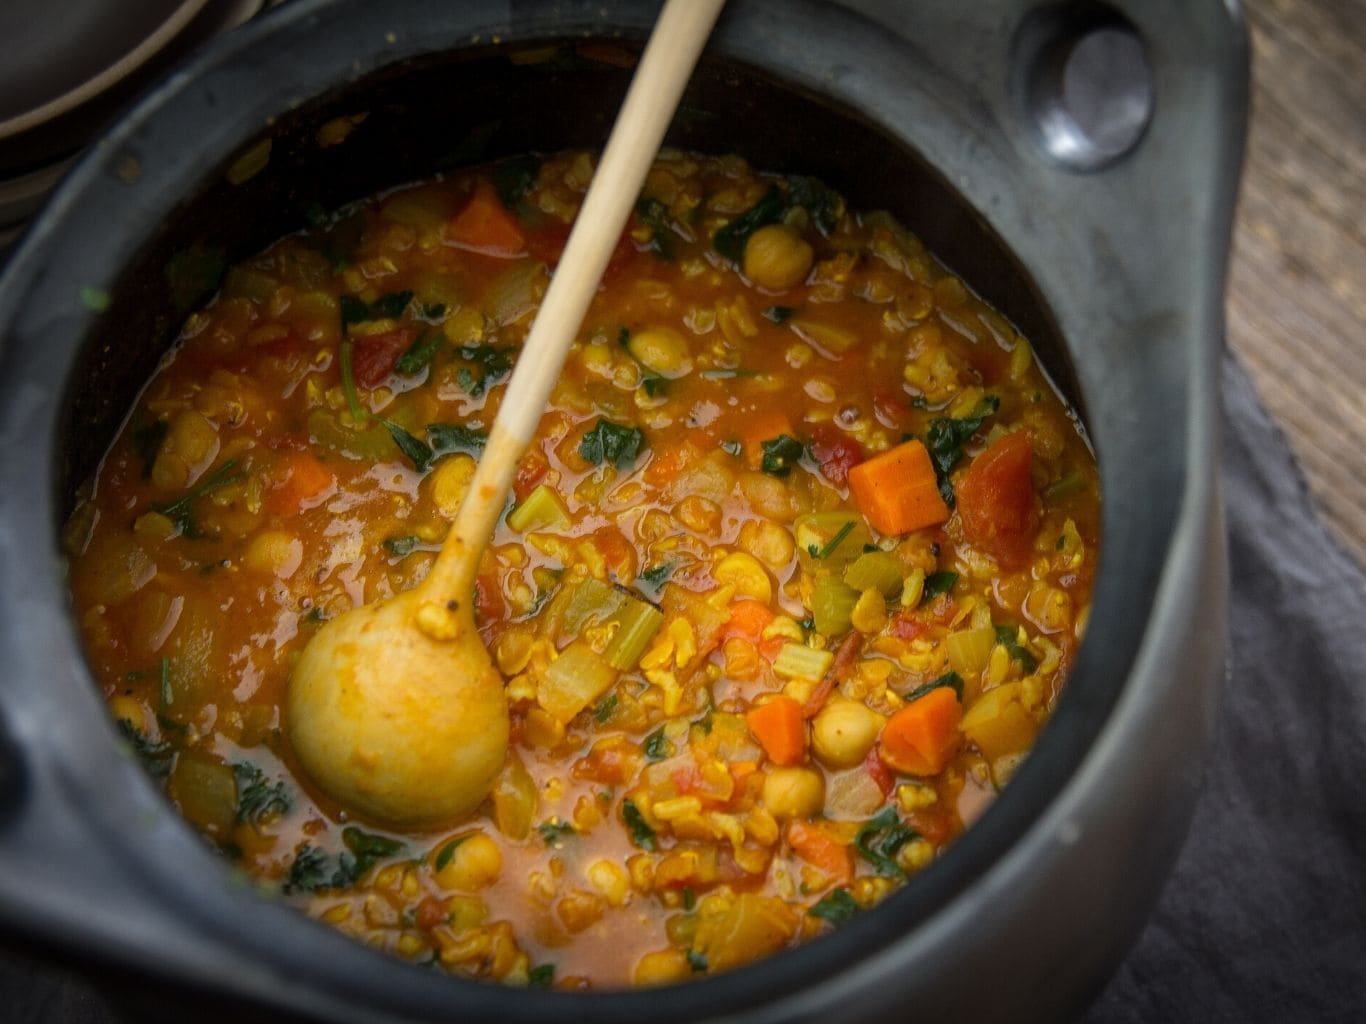 Pot of harira, a North African stew made with chickpeas, lentils, rice and vegetables | from verygoodcook.com